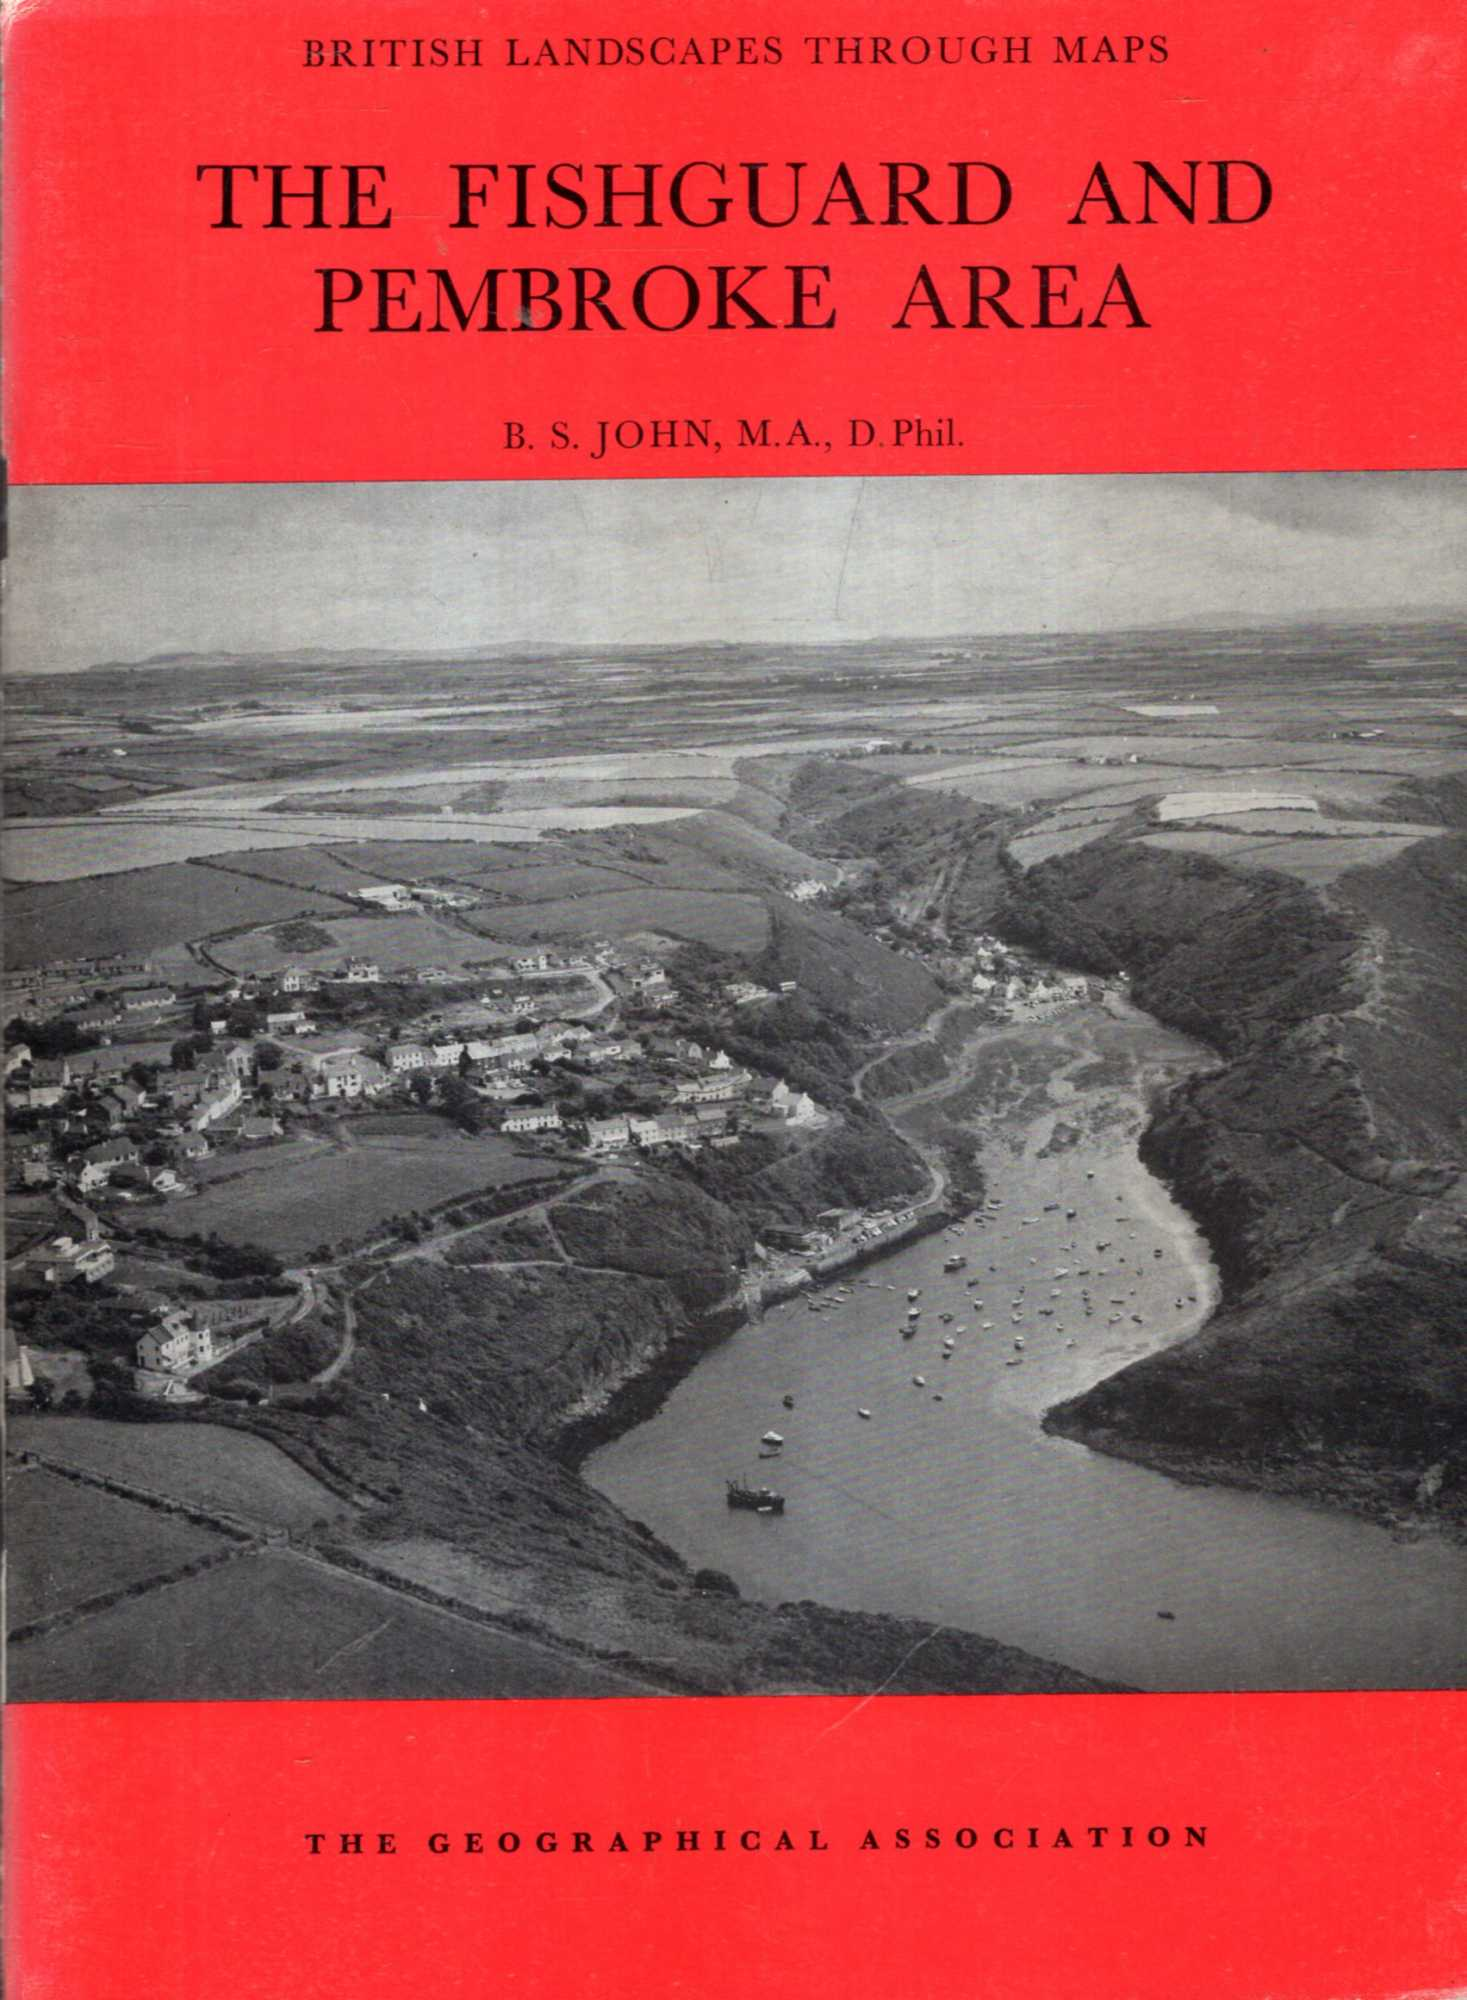 Image for British Landscapes Through Maps 16 : The Fishguard and Pembroke Area, a description of the O.S. one-inch Sheet 138/151 : Fishguard and Pembroke